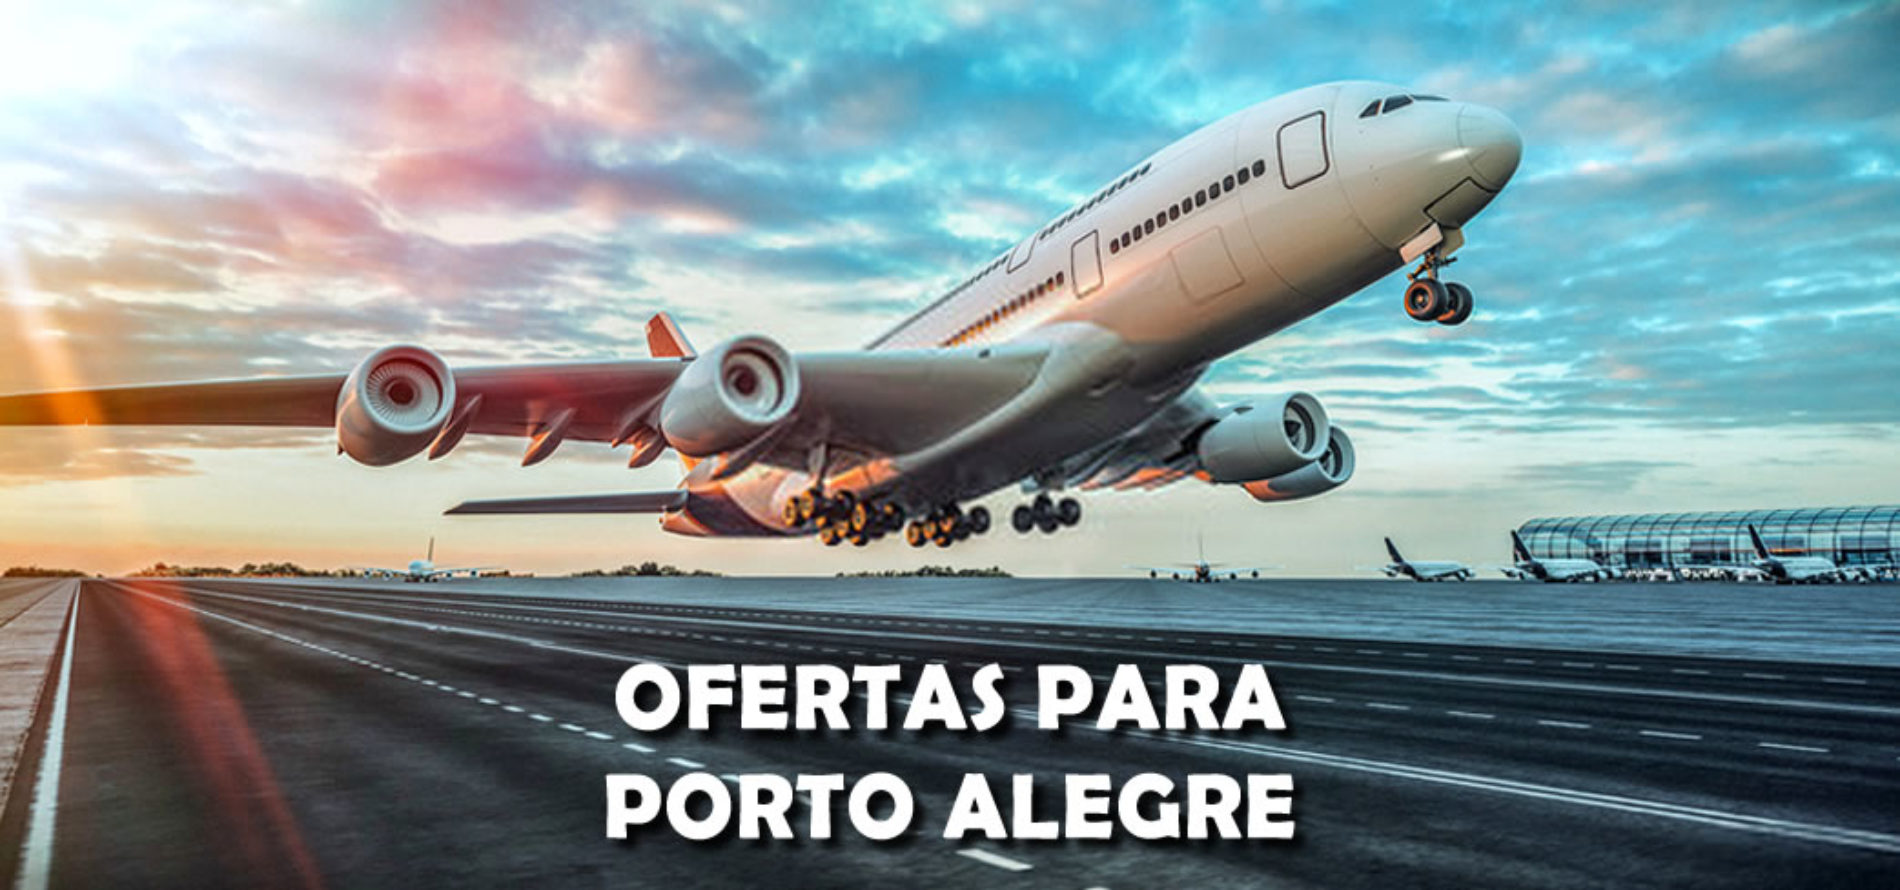 Black Friday de ofertas CVC e Decolar para Porto Alegre RS